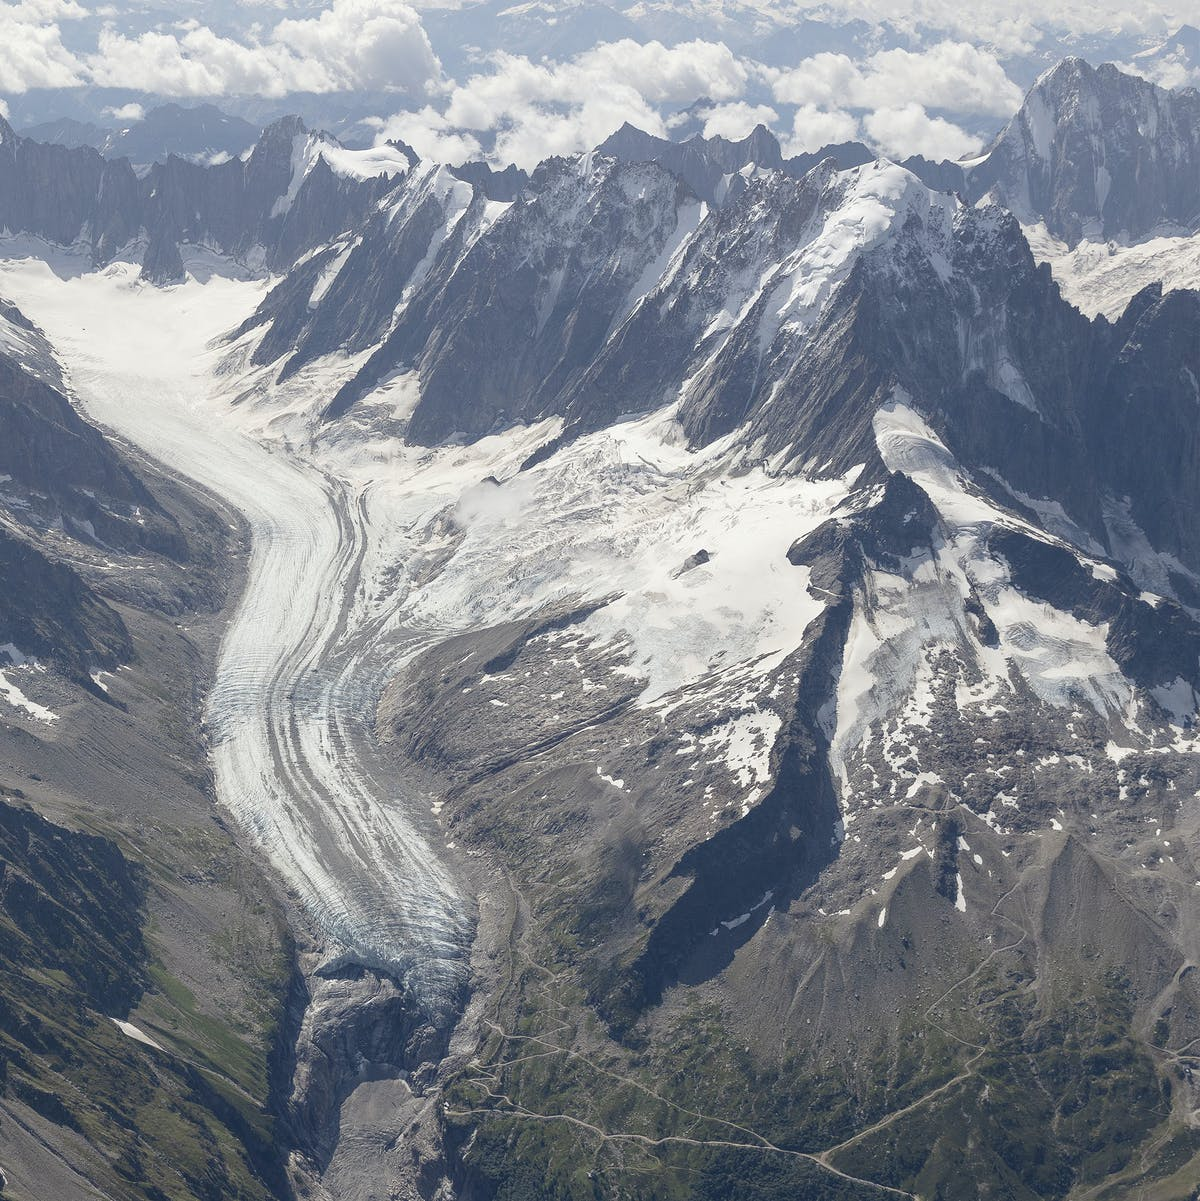 Glacier photos taken 100 years apart show the severity of climate change